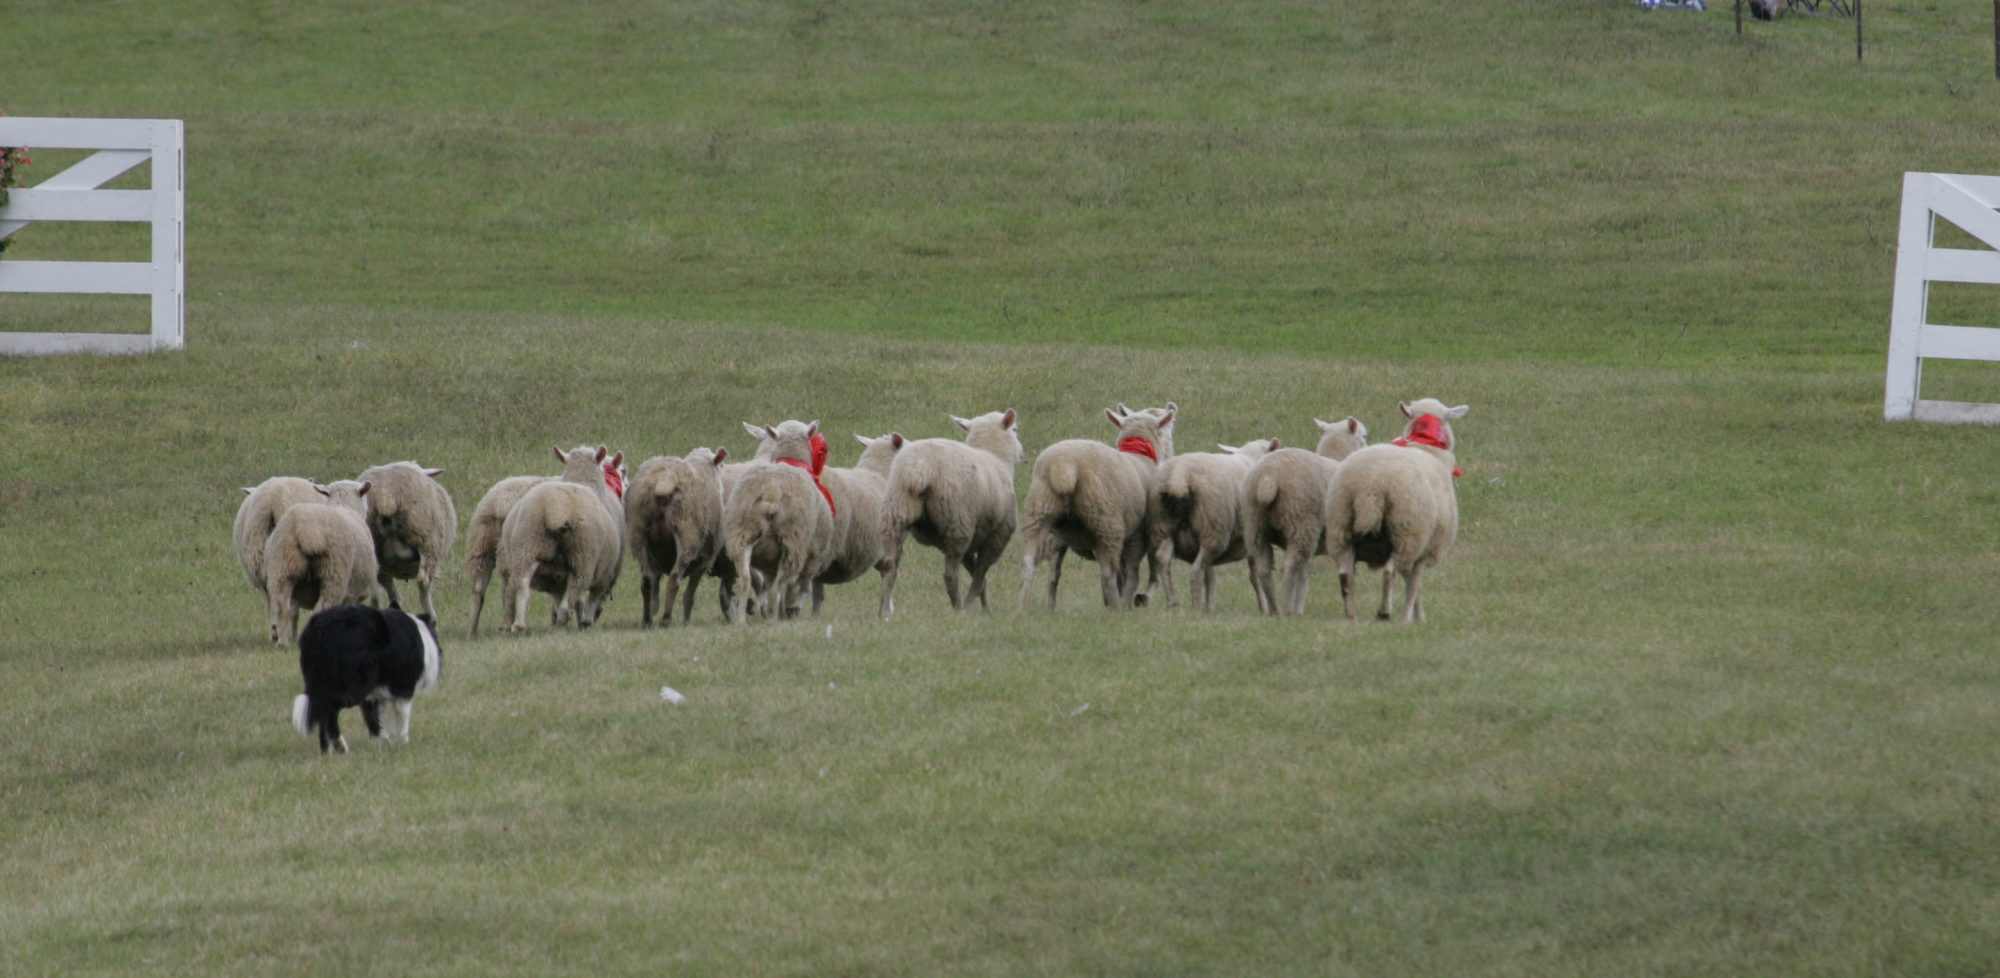 Leatherstocking Sheepdog trials